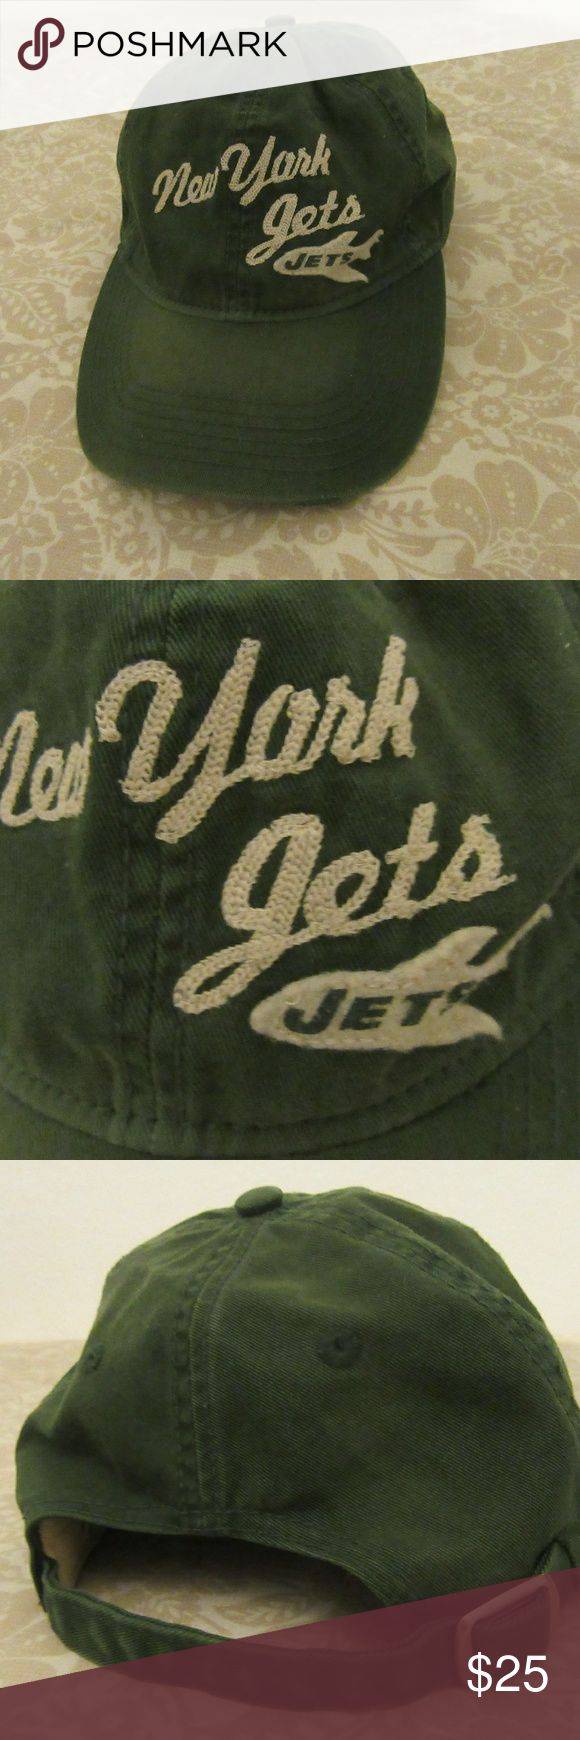 vintage new york jets embroidered hat great shape  vintage new york jets embroidered hat nfl reebok classic vintage Accessories Hats